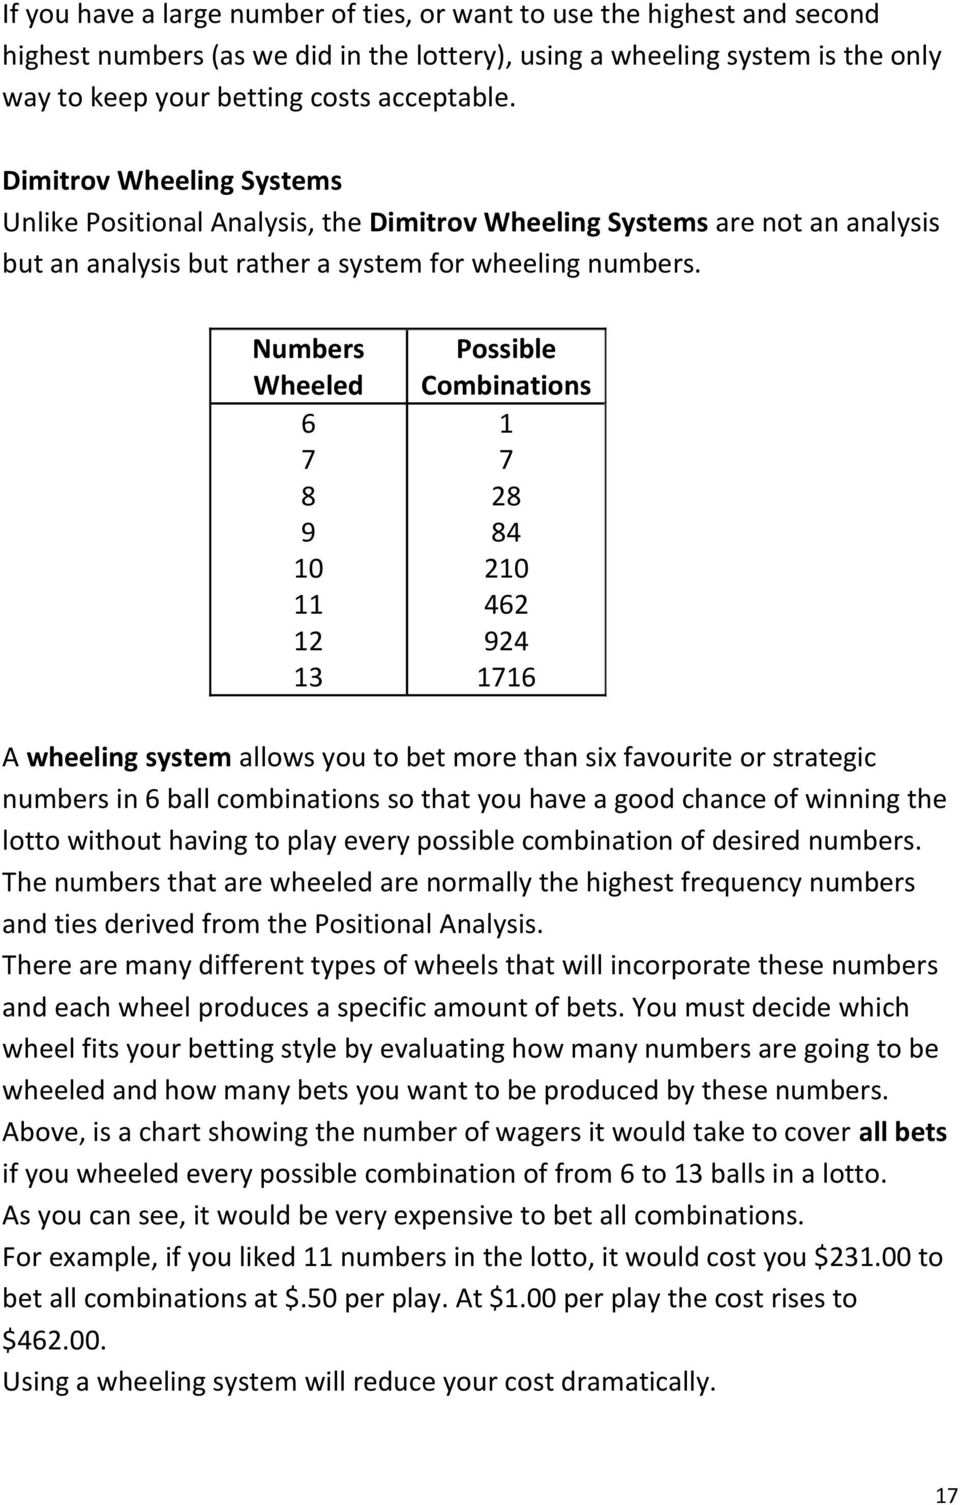 Numbers Wheeled 0 Possible Combinations 0 A wheeling system allows you to bet more than six favourite or strategic numbers in ball combinations so that you have a good chance of winning the lotto